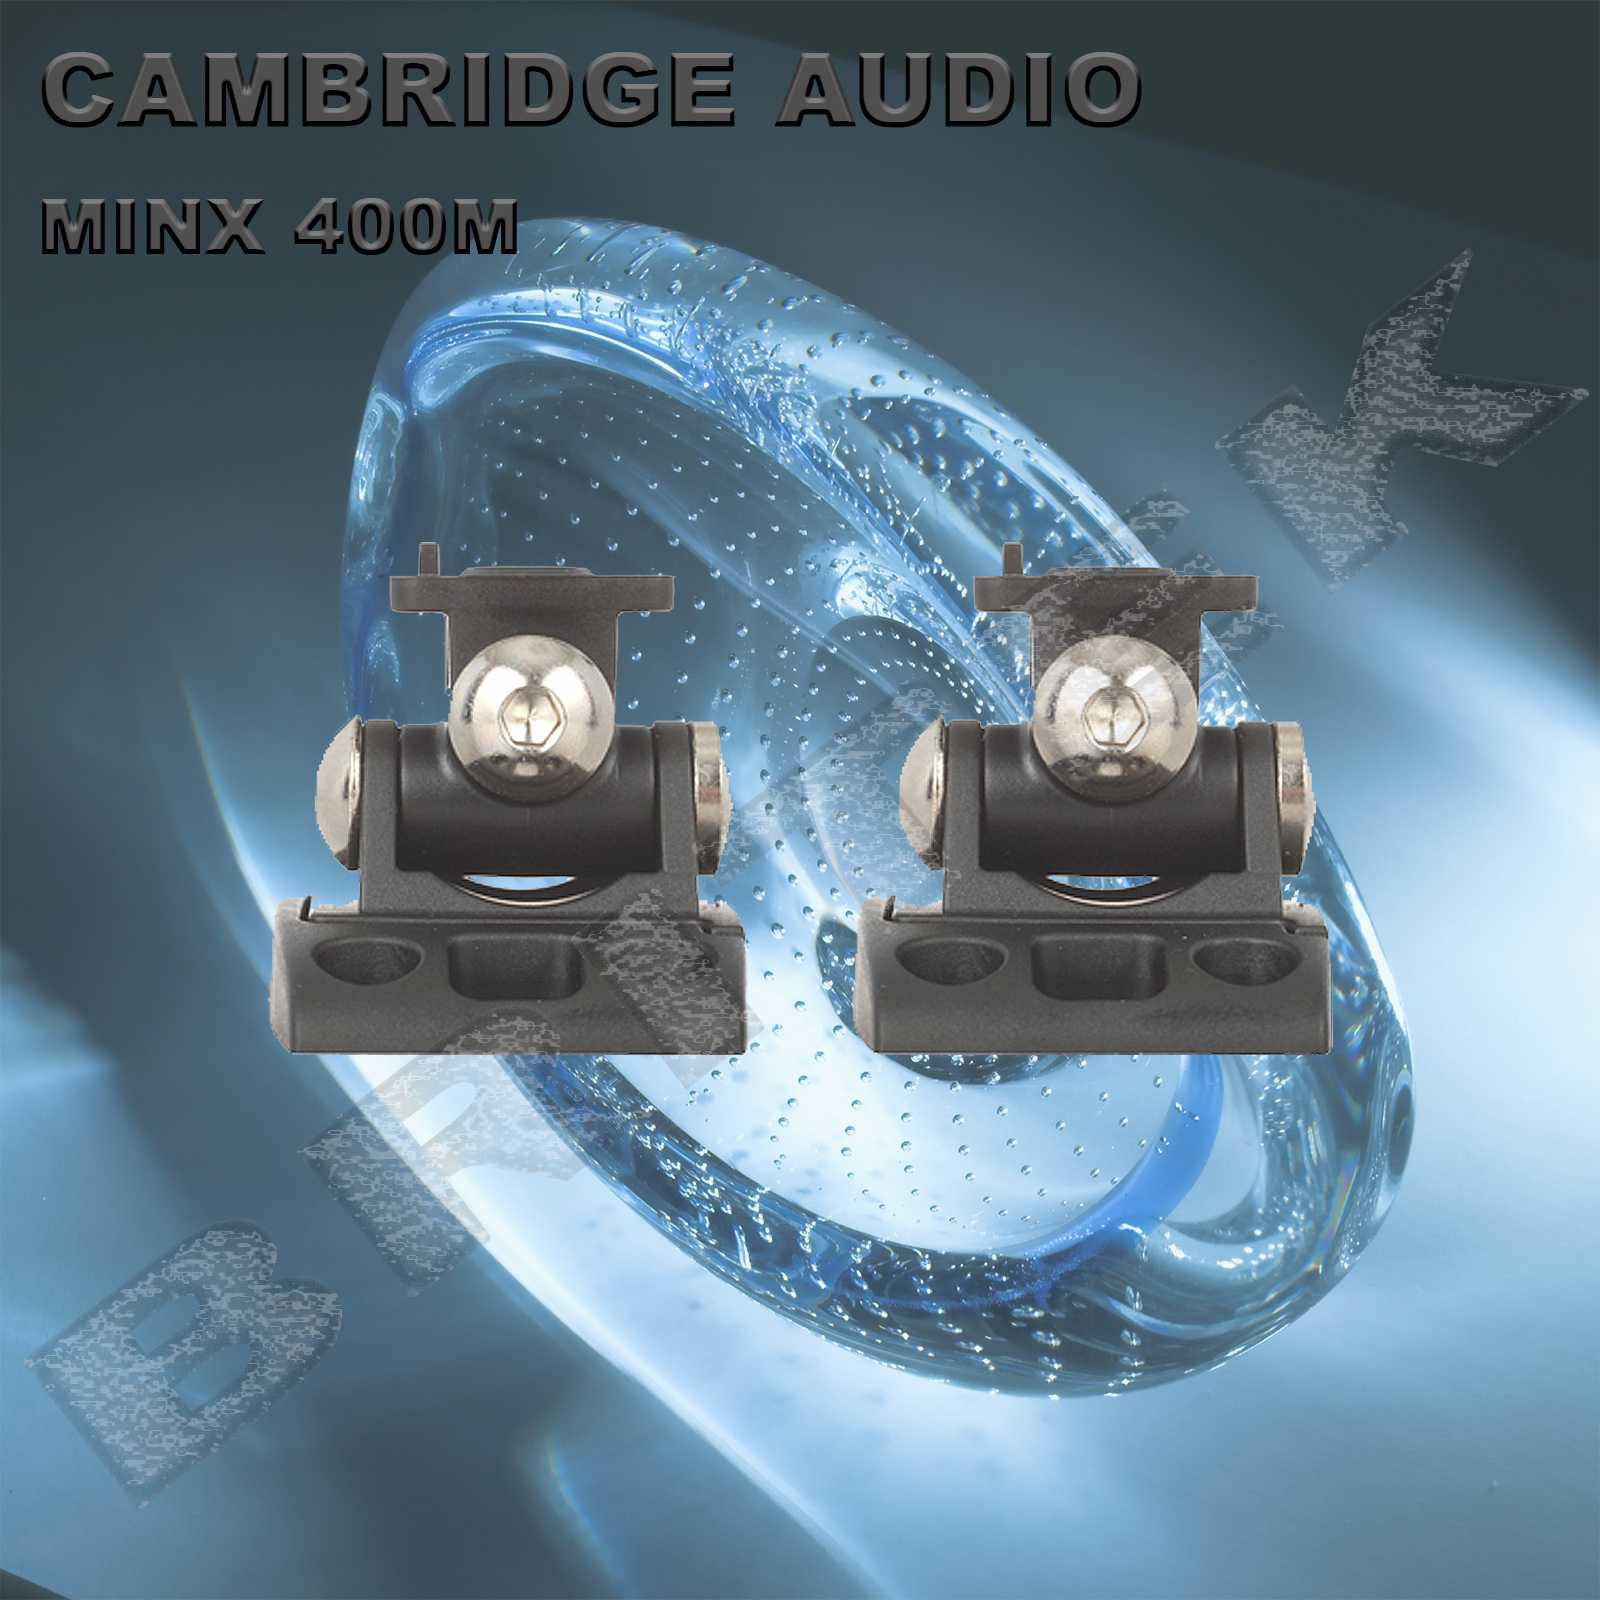 Cambridge Audio MINX 400M